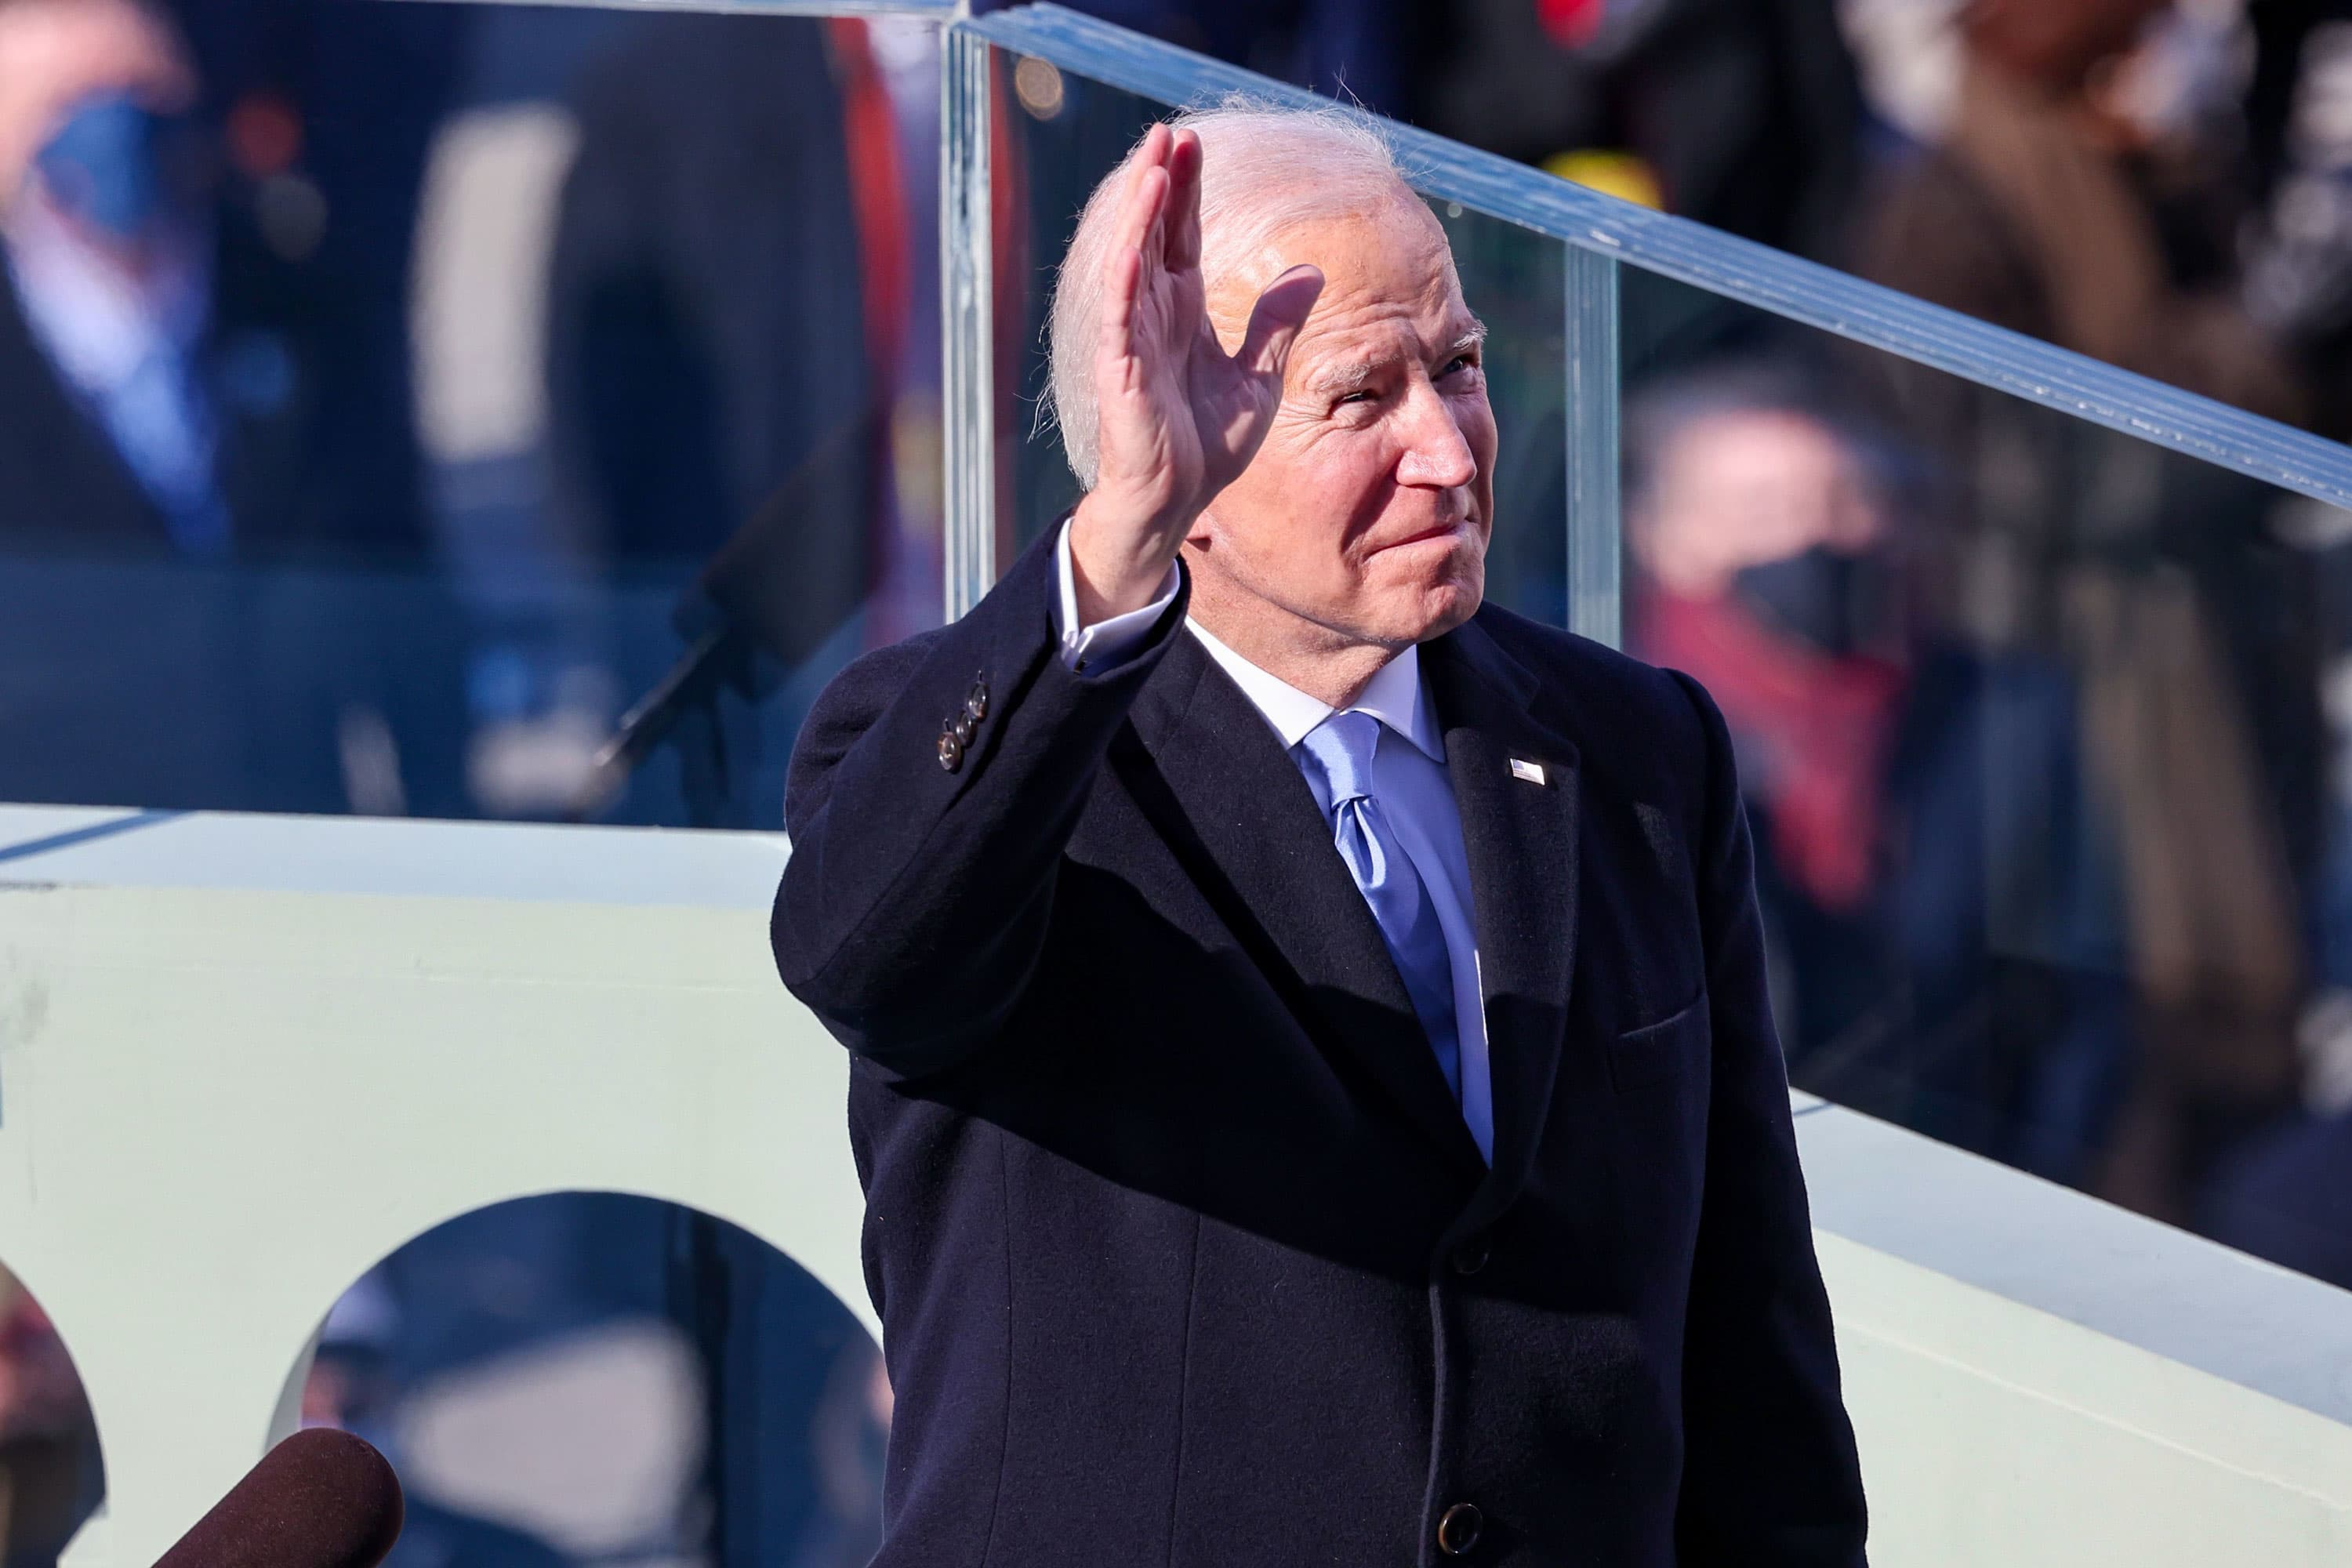 Biden's inaugural address used the word 'democracy' more than any other president's – CNBC